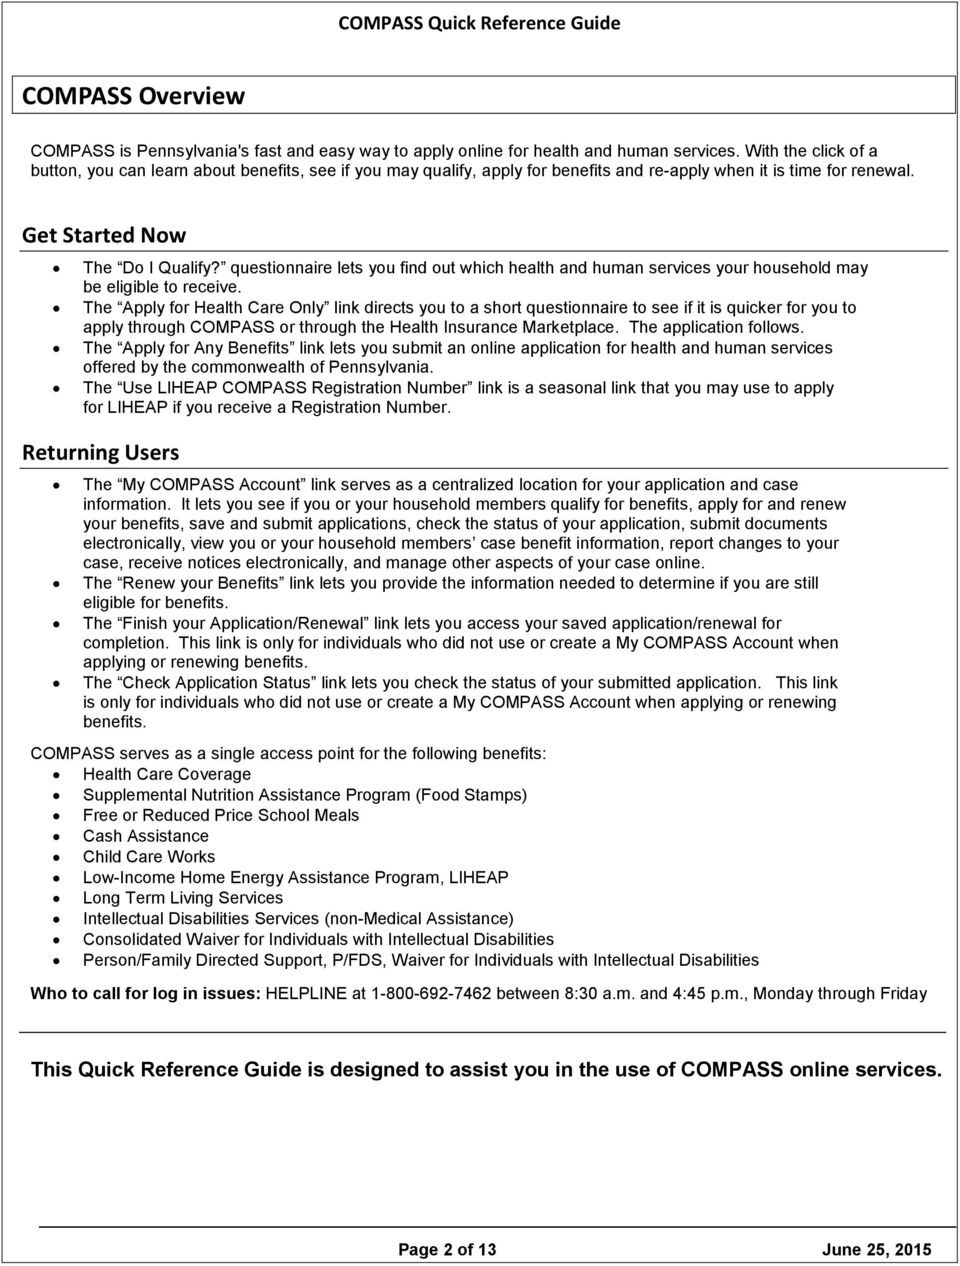 Compass Quick Reference Guide Pdf Free Download